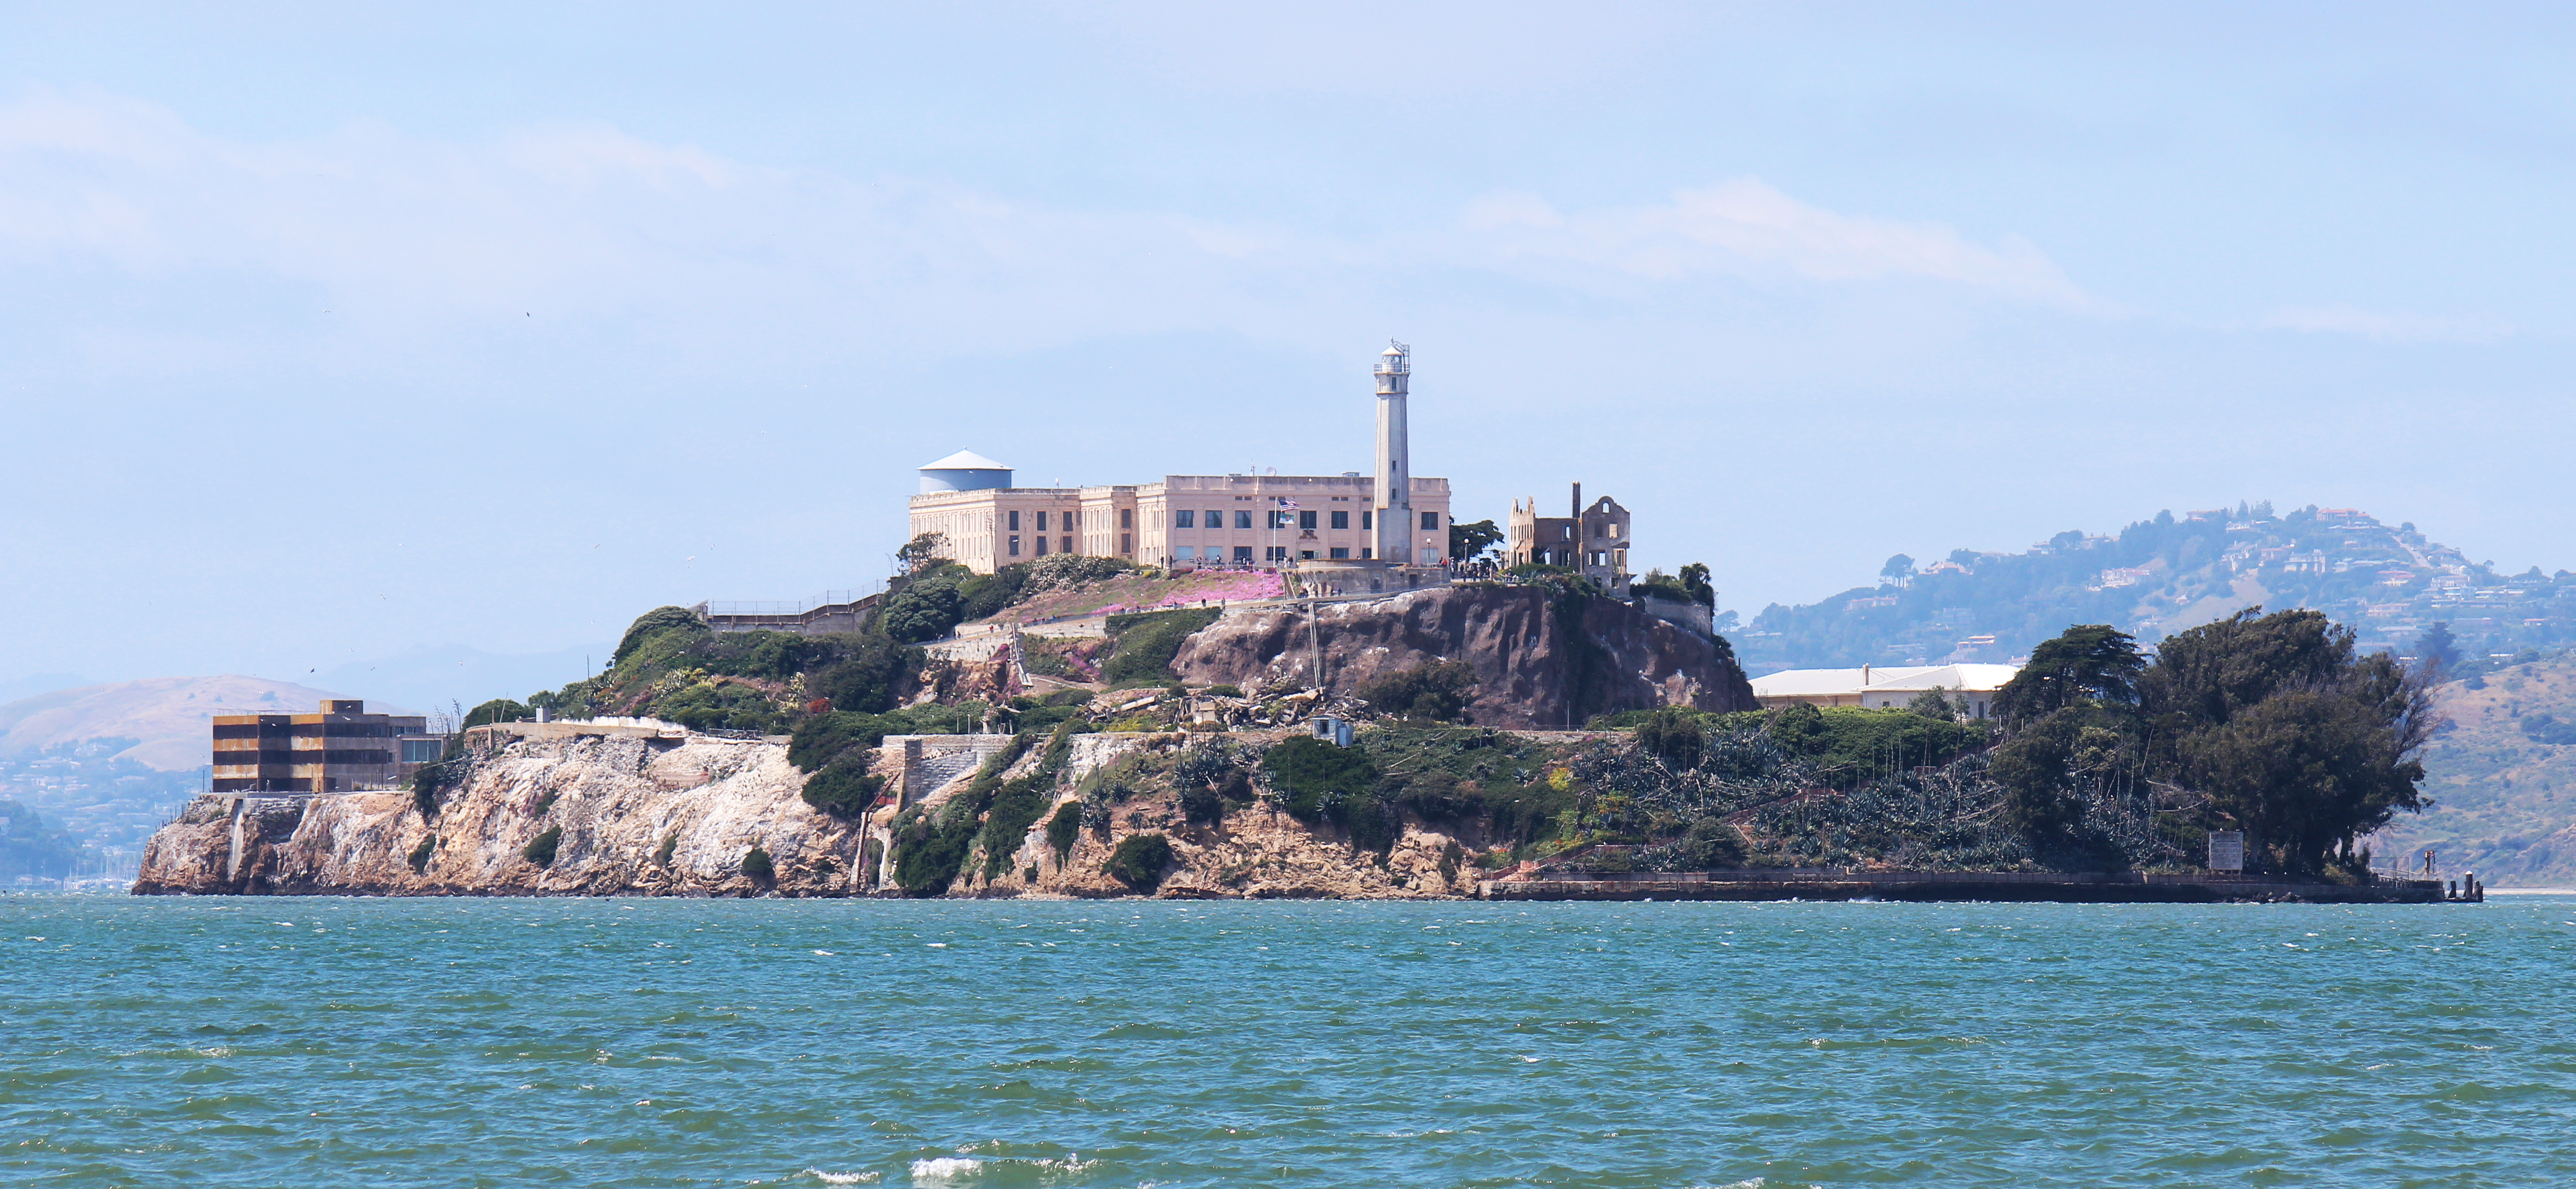 Alcatraz Island, The Rock, San Francisco, Californien